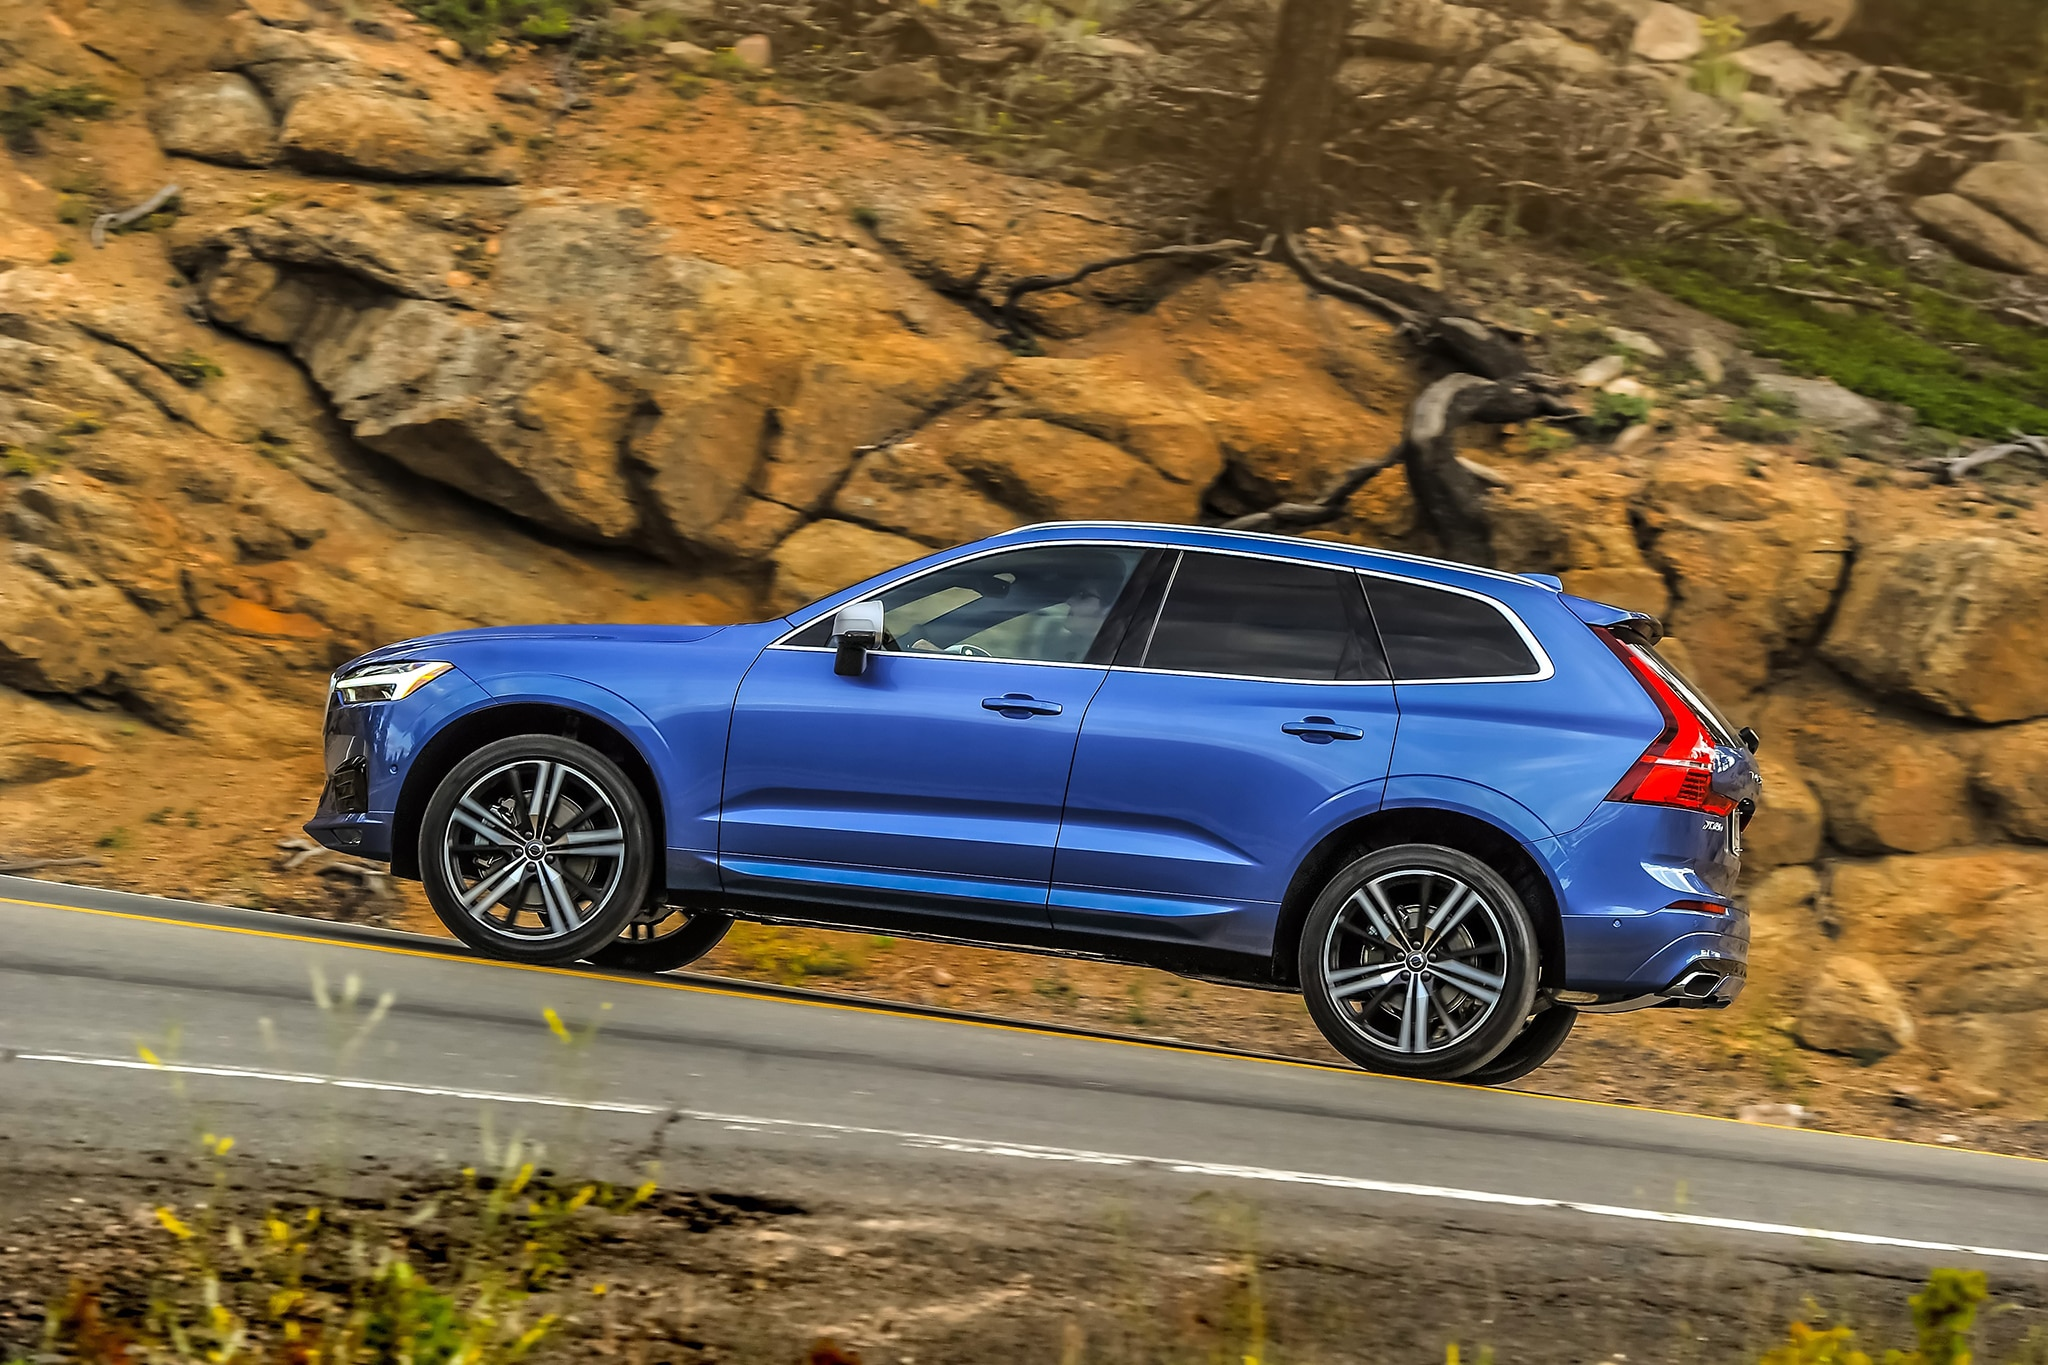 272a2ccd1 Swedes in Denver: We Drive the 2018 Volvo XC60, V90, and S90 T8 ...